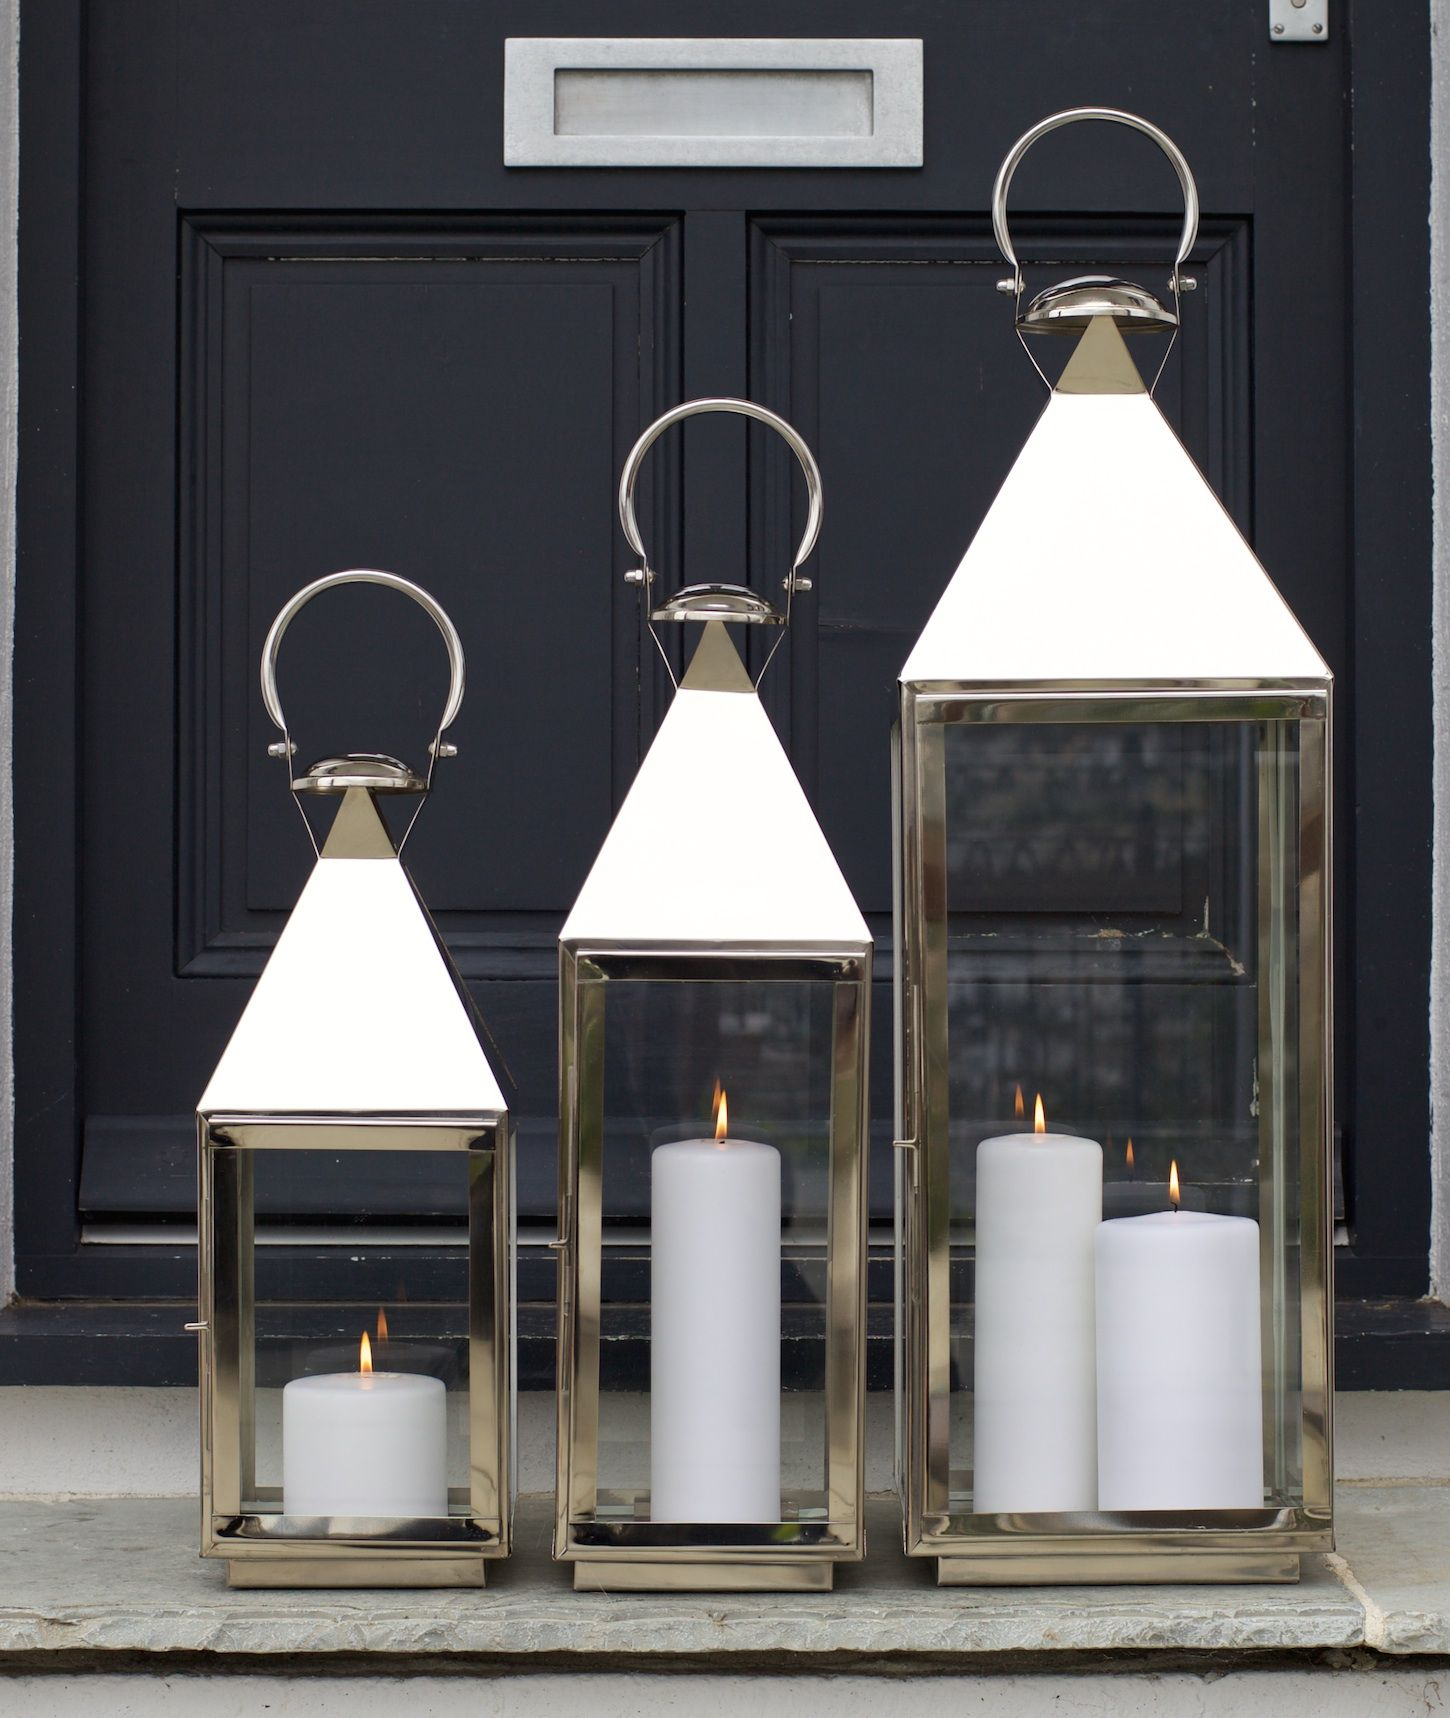 Classic And Contemporary Tall Stainless Steel Candle Lanterns Zazahomes Co Uk Outdoor Candle Lanterns Garden Candle Lanterns Silver Candle Lanterns